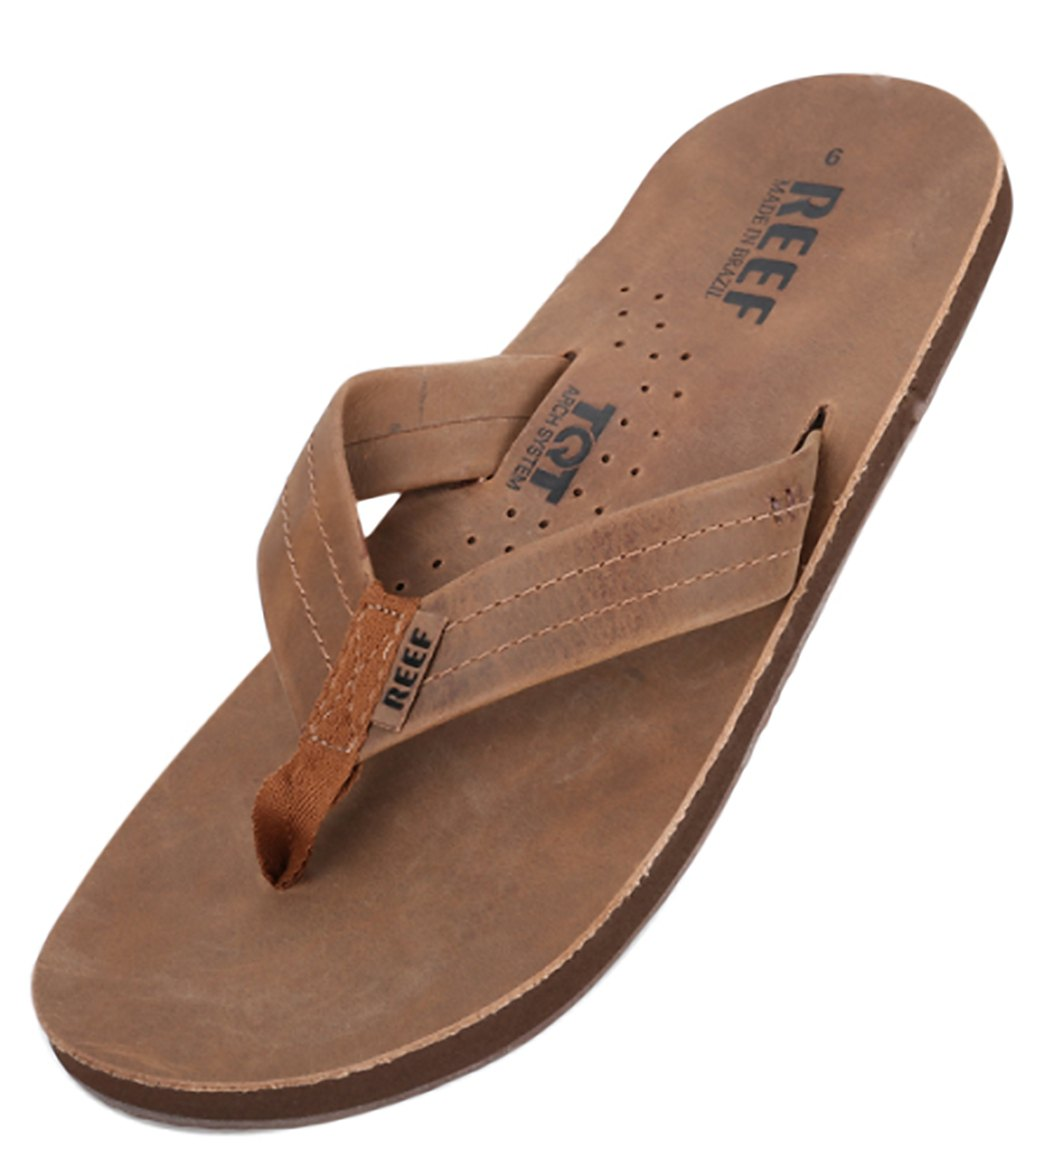 16943fcbeb2a3 Reef Men's Draftsmen Flip Flop at SwimOutlet.com - Free Shipping